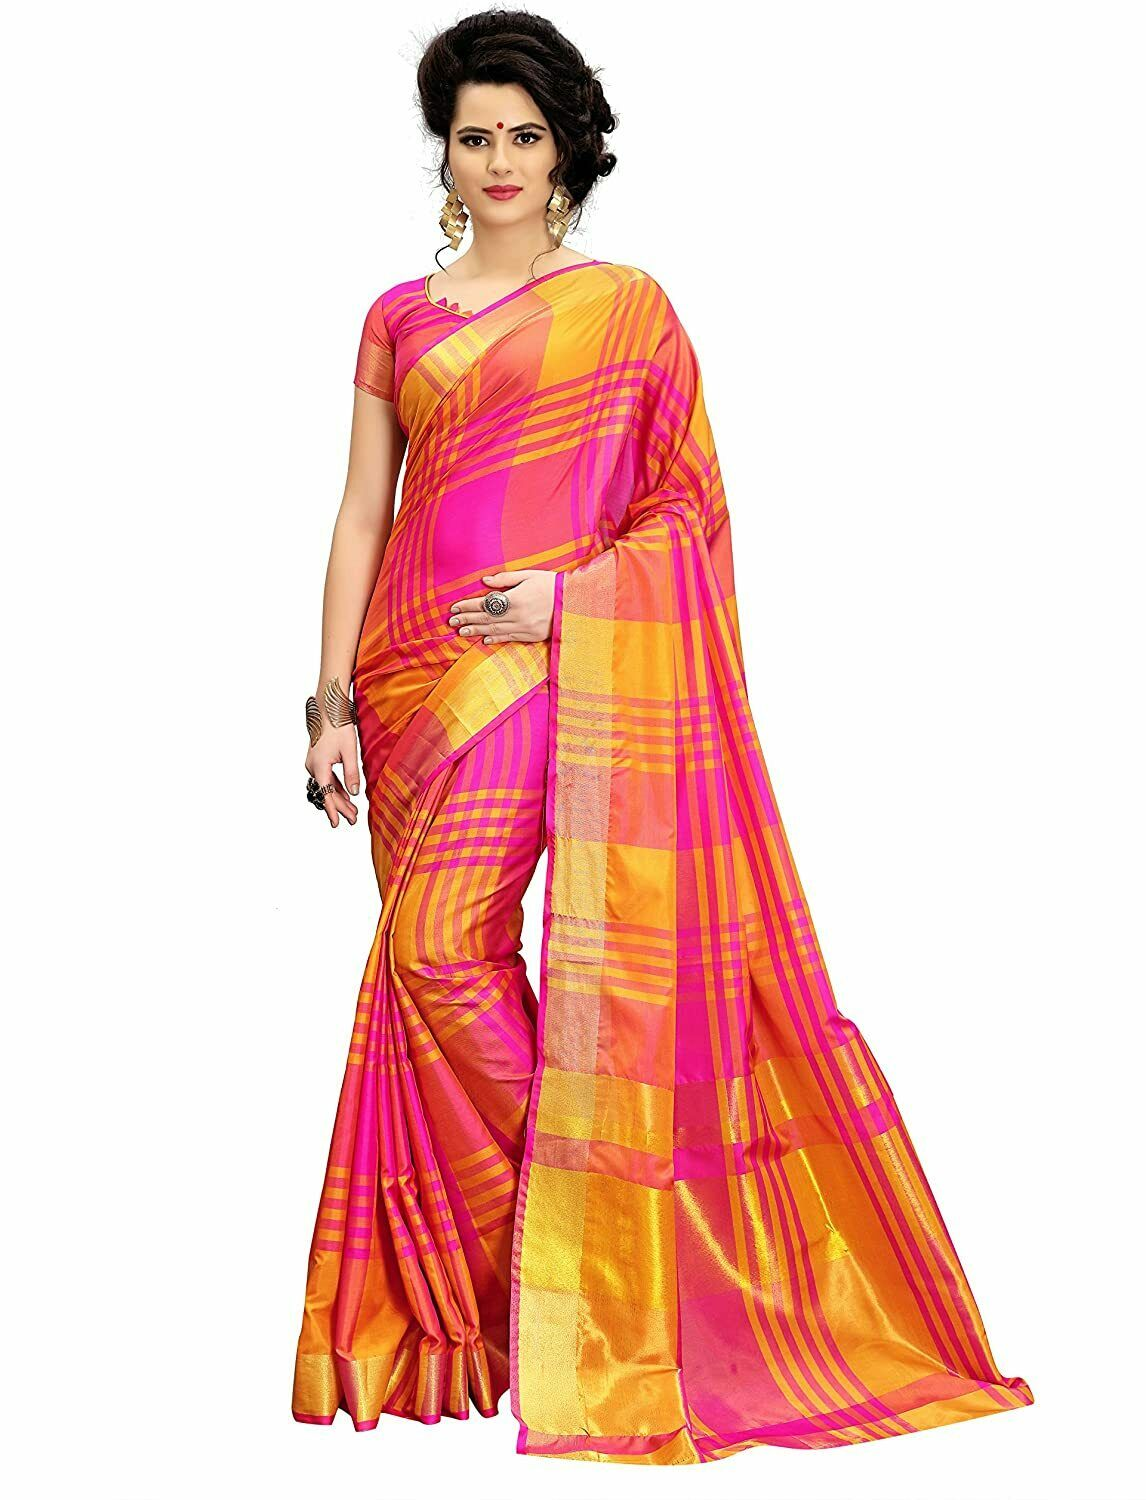 Indian Women's Cotton Silk Printed Saree With Blouse Piece Free Shipping, Pink &